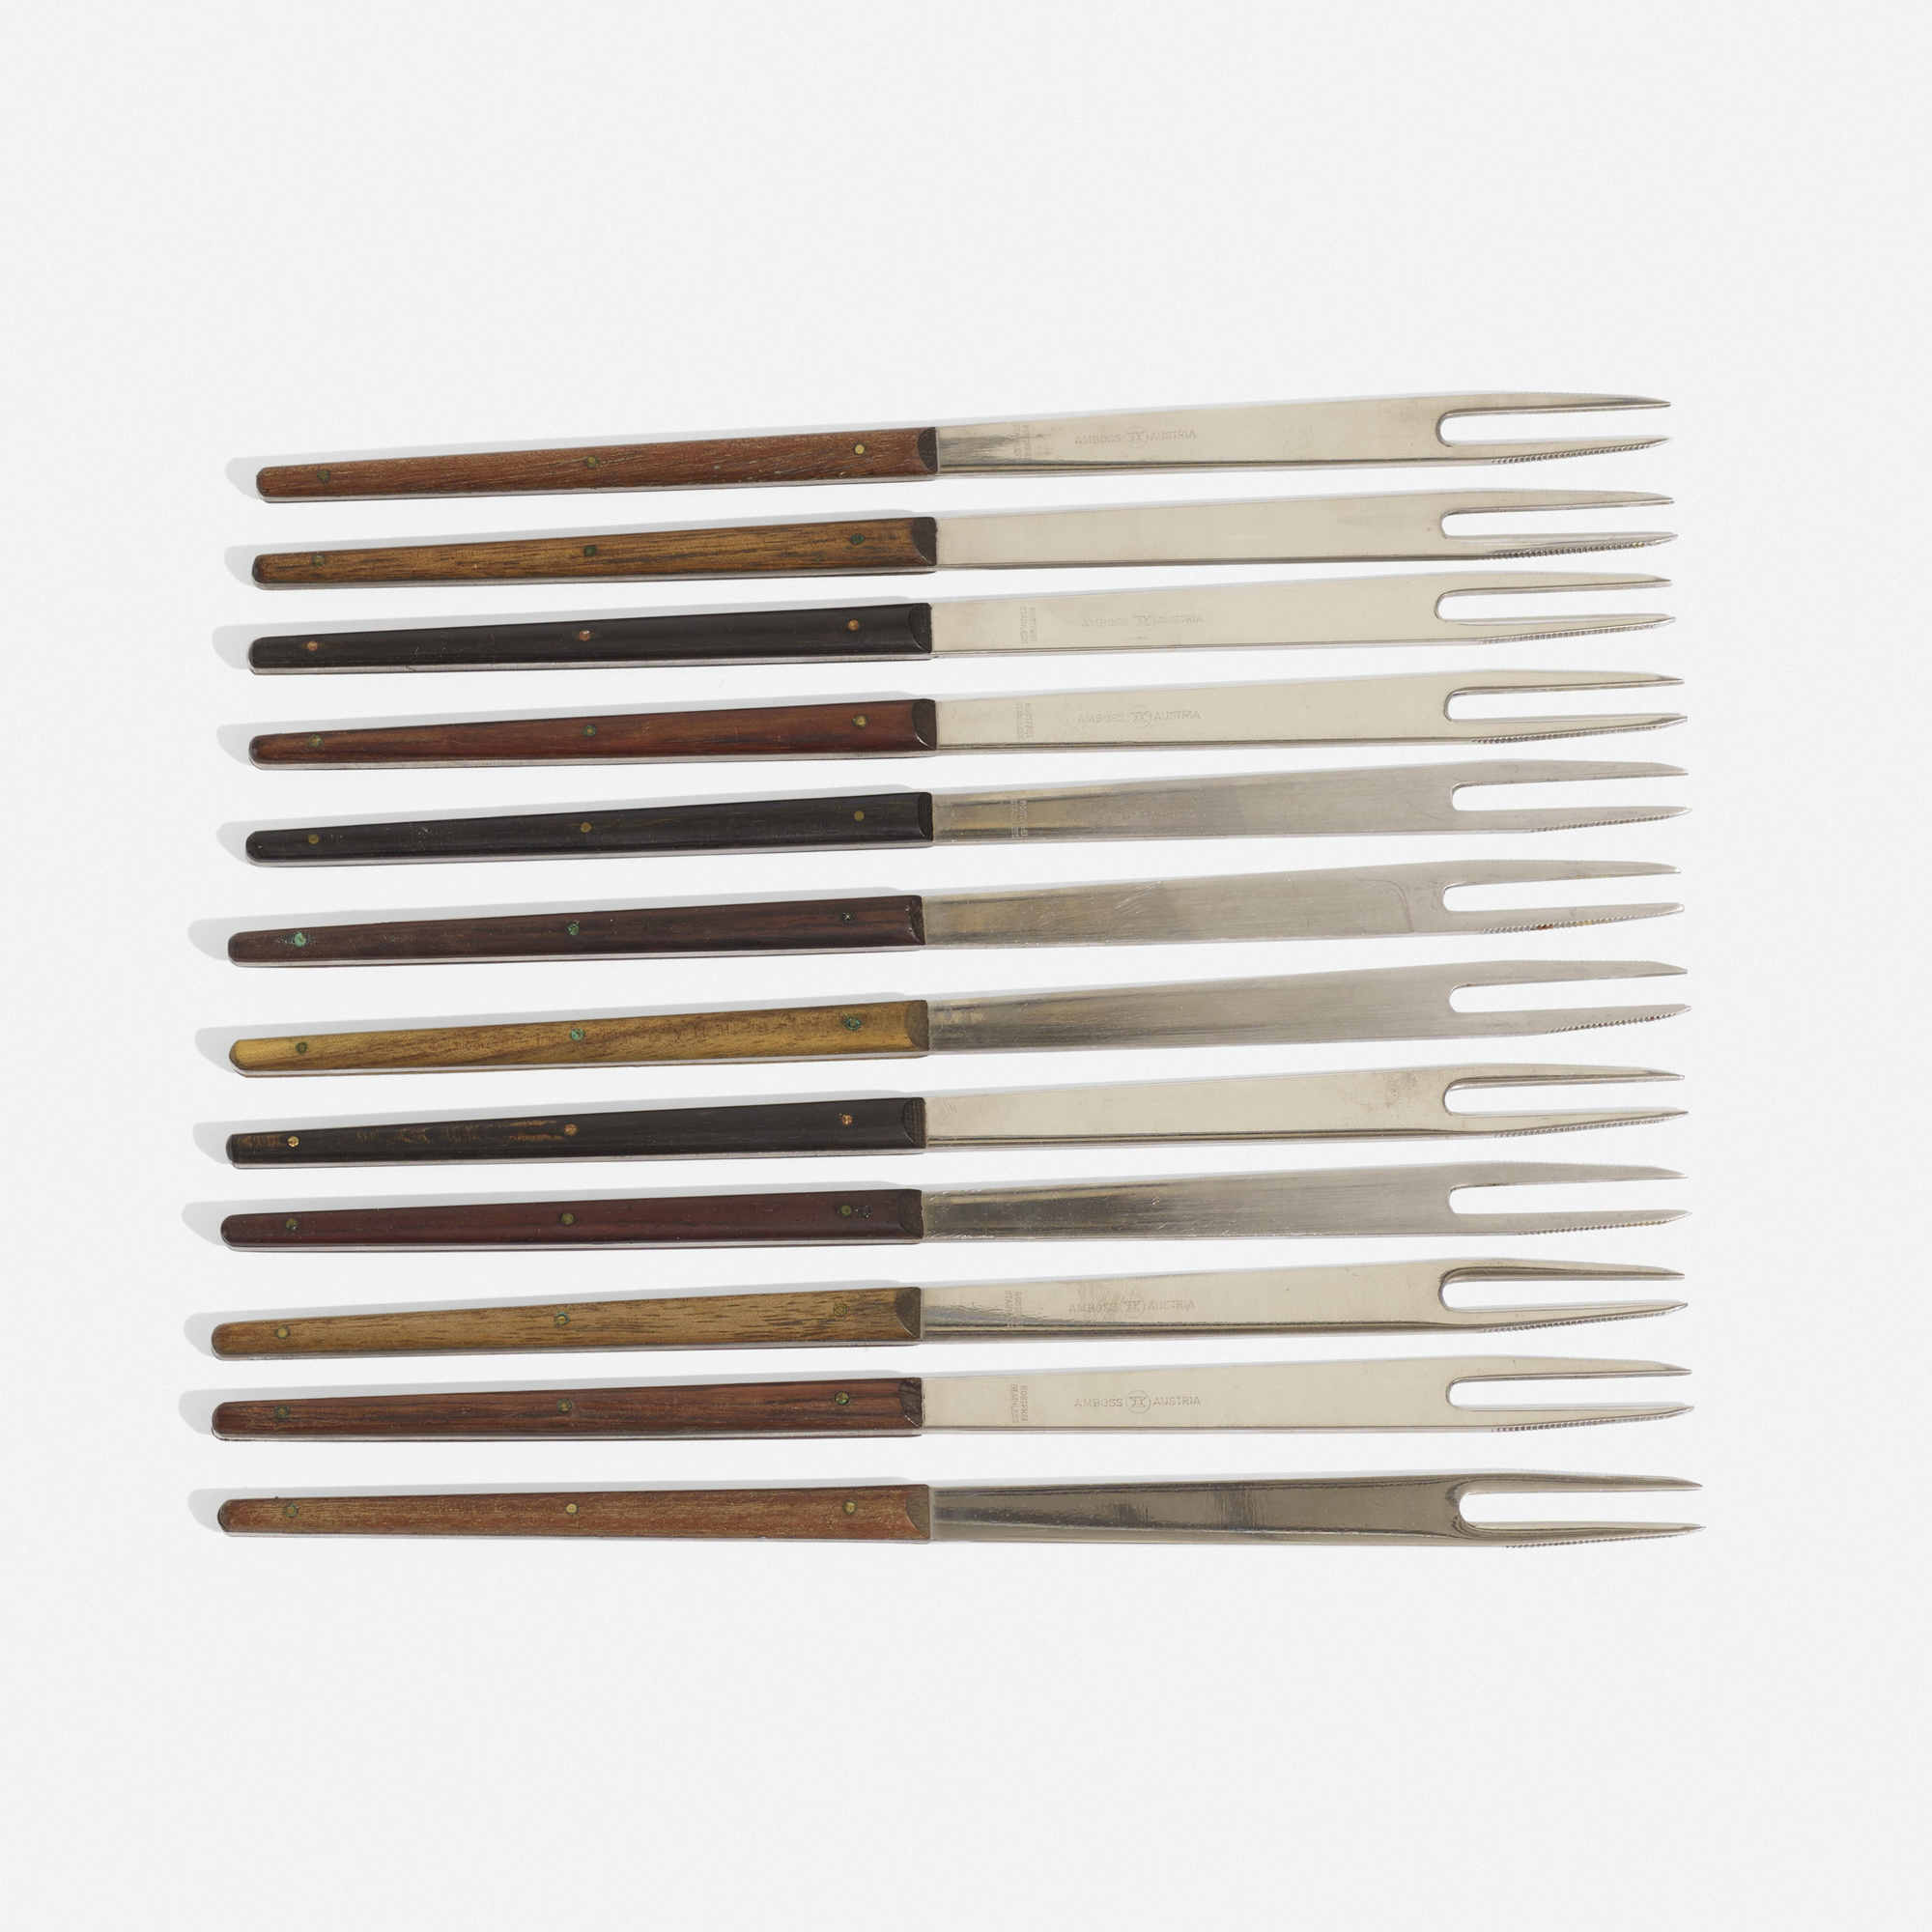 232: Carl Auböck III / collection of three fondue fork sets (2 of 3)